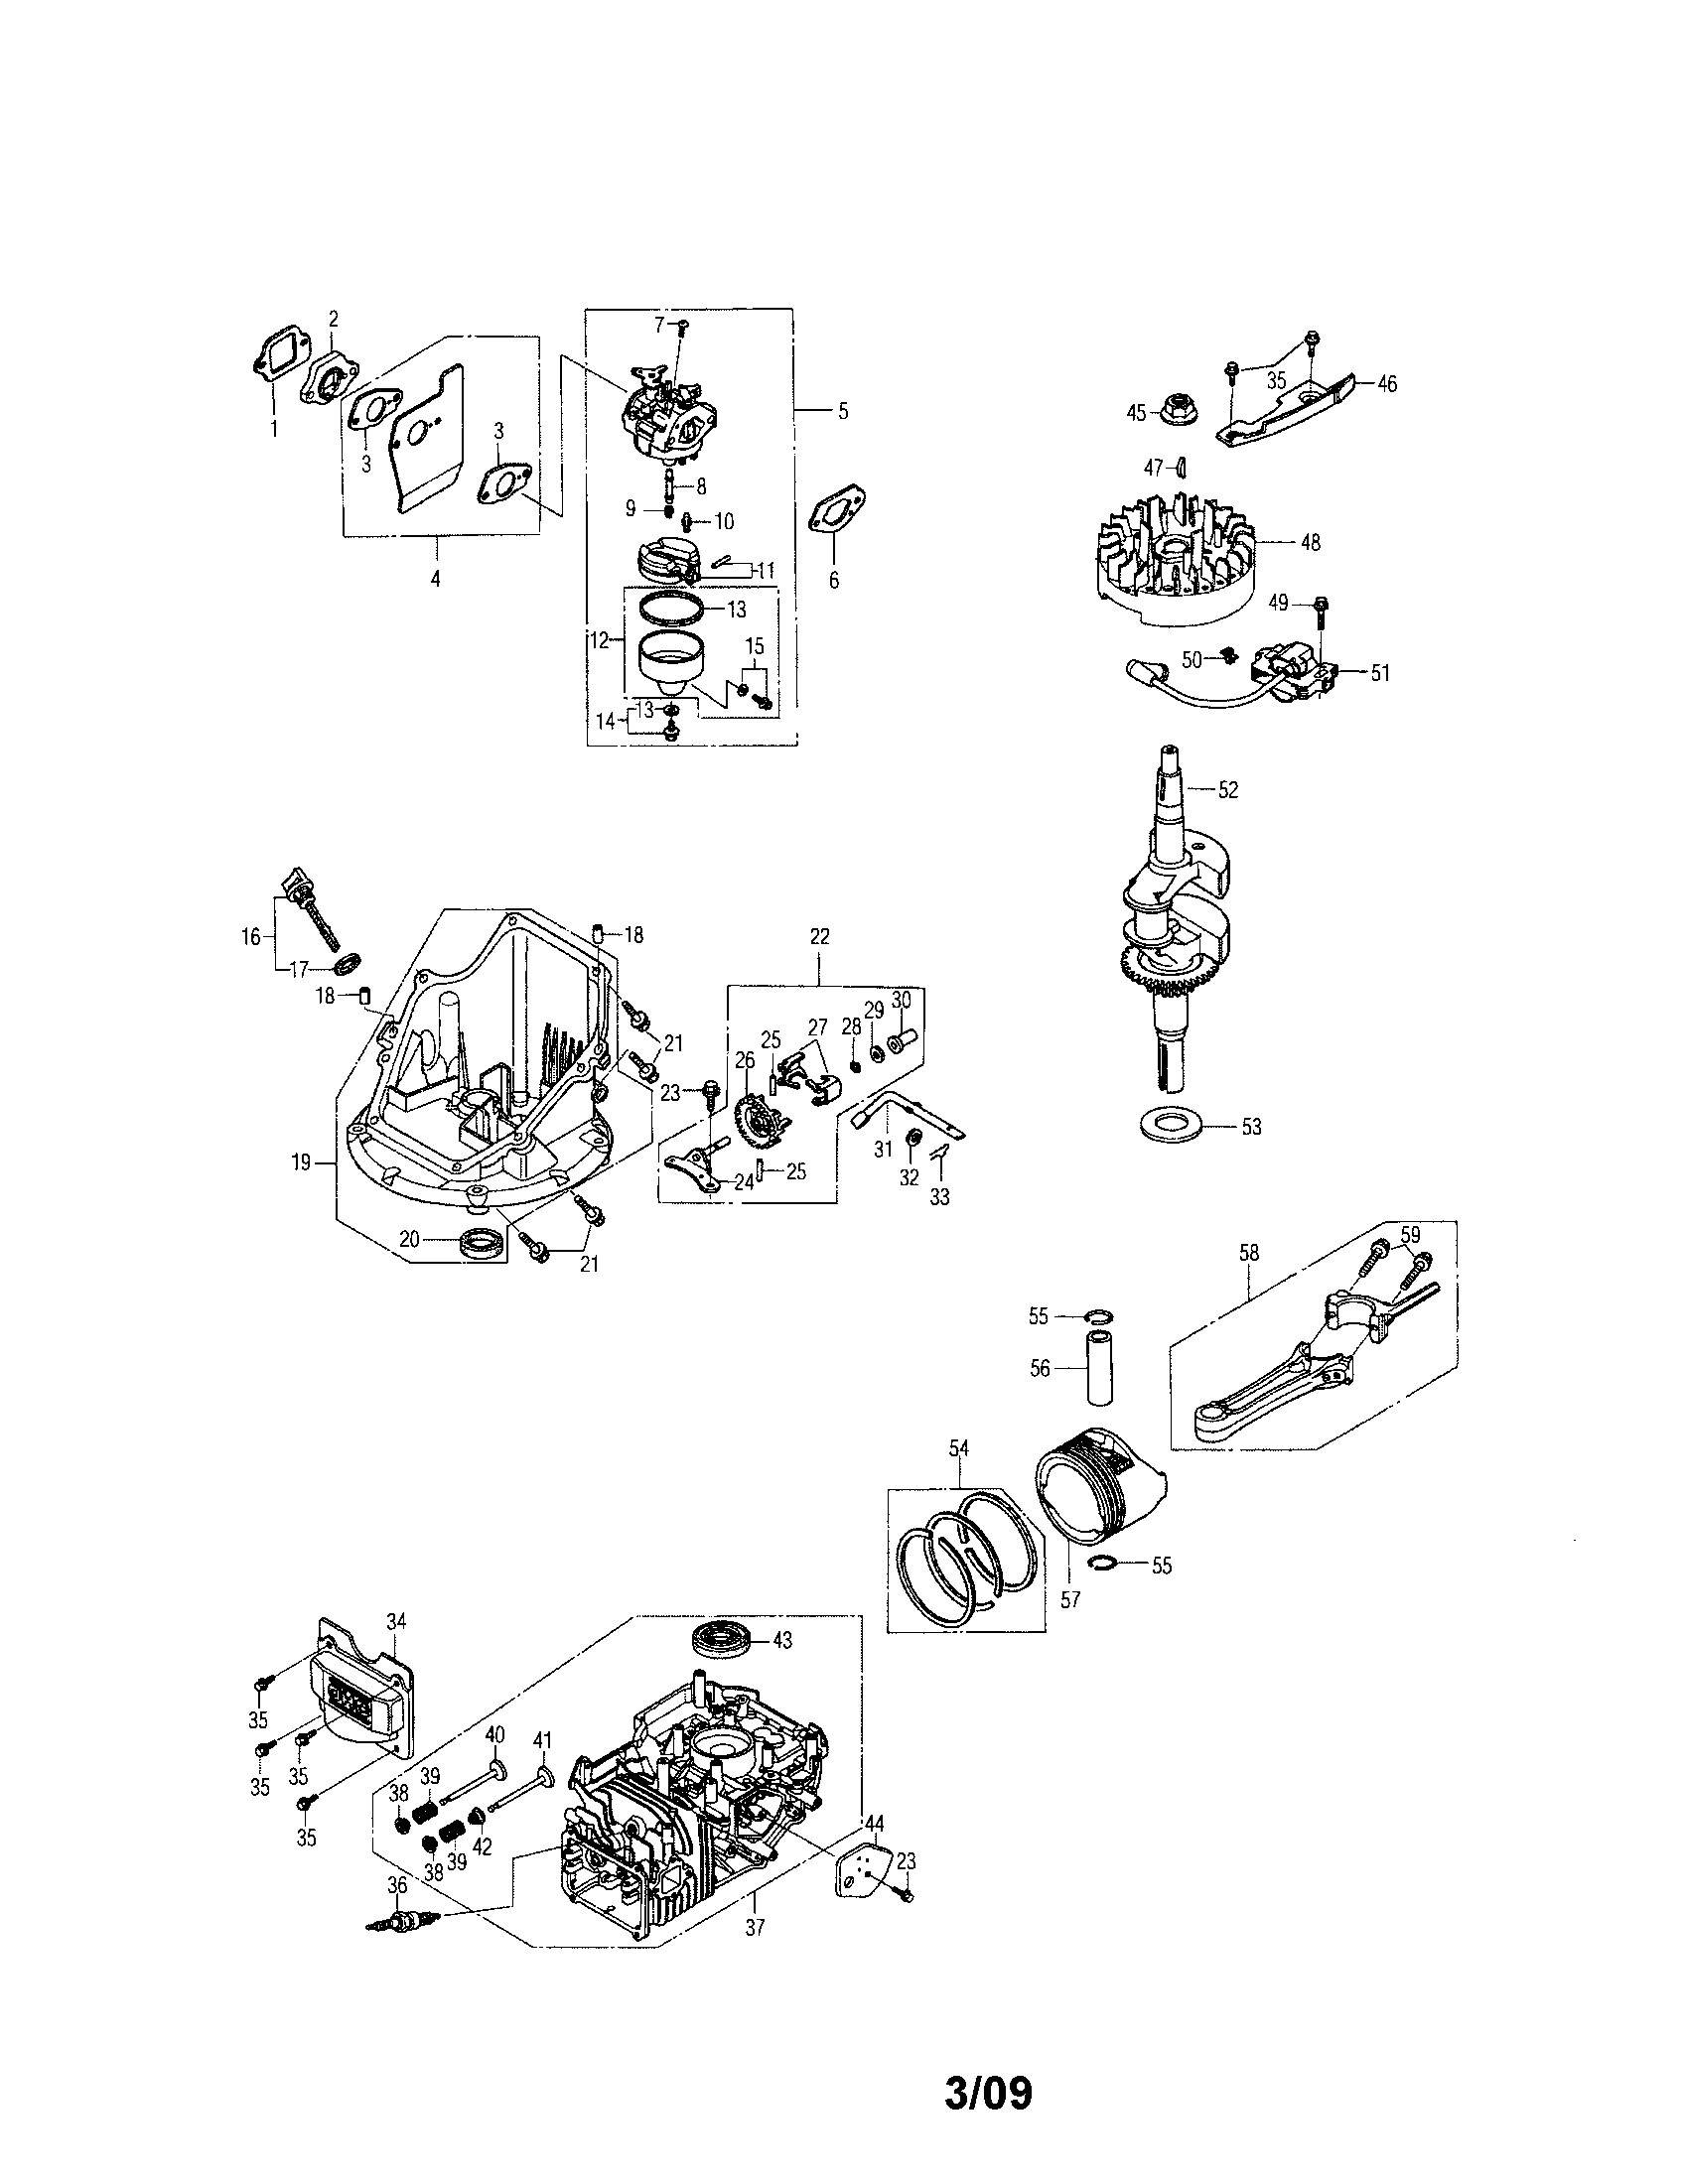 Honda Gcv160 Engine Diagram Honda Model Gcv160 Lan5r Engine Genuine Parts Of Honda Gcv160 Engine Diagram